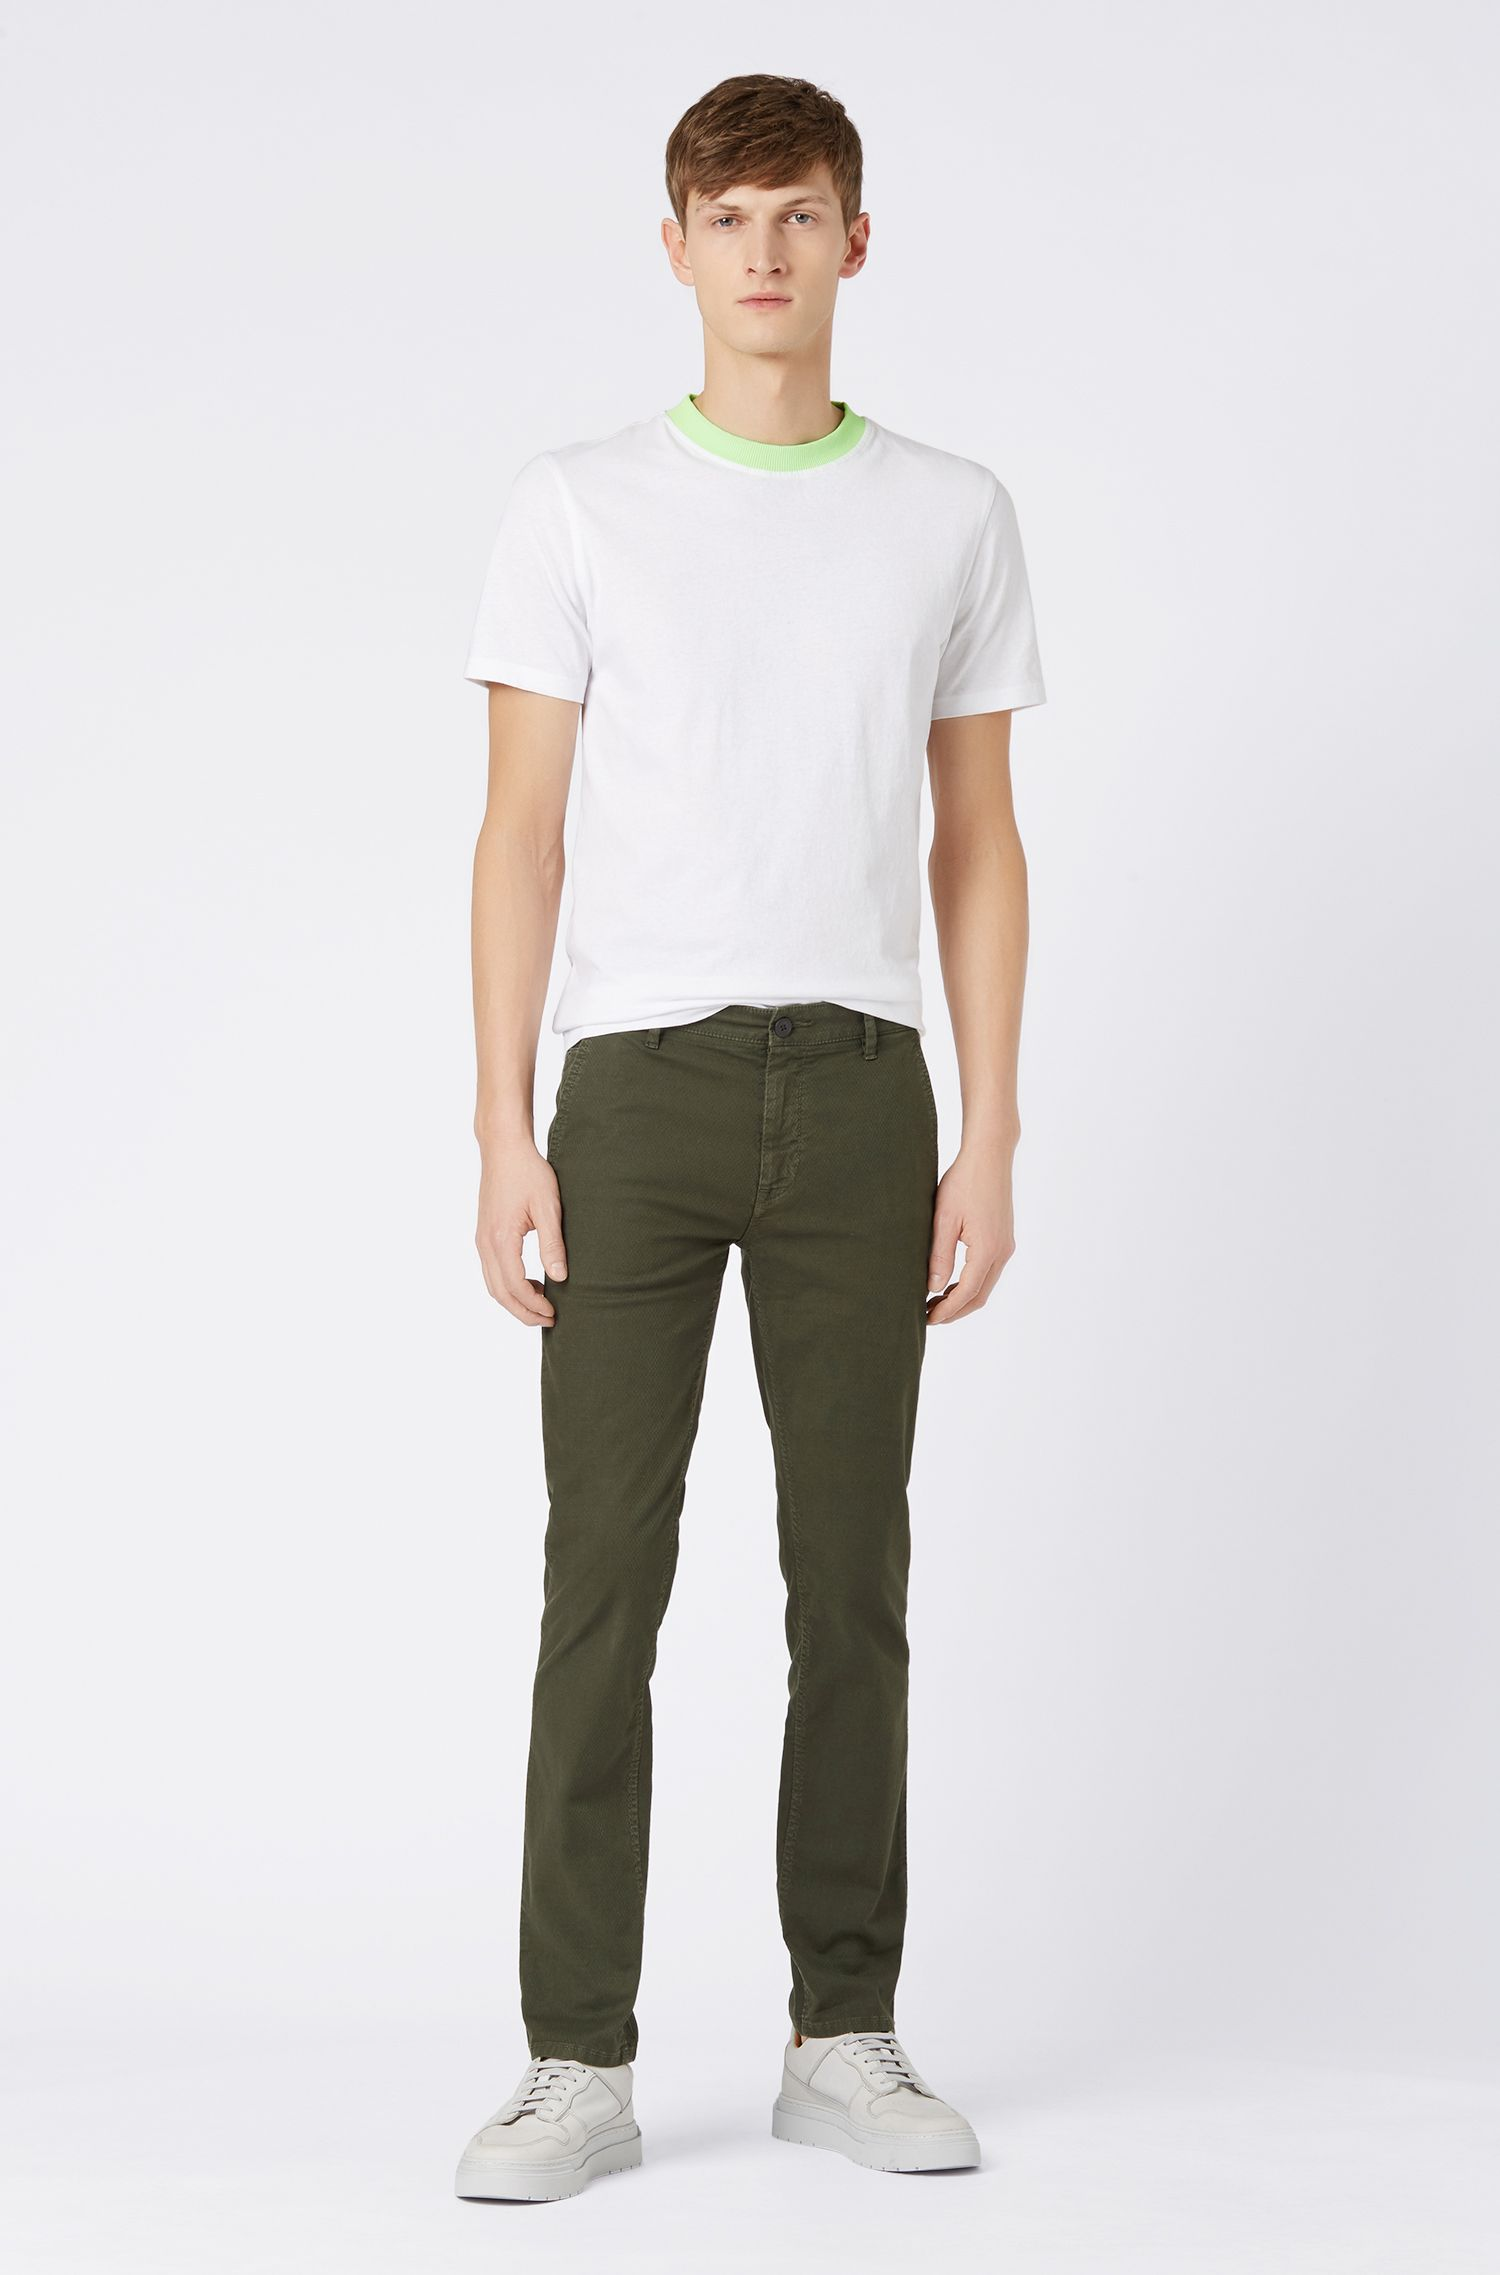 Pantalon Slim Fit en coton stretch structuré, Vert sombre